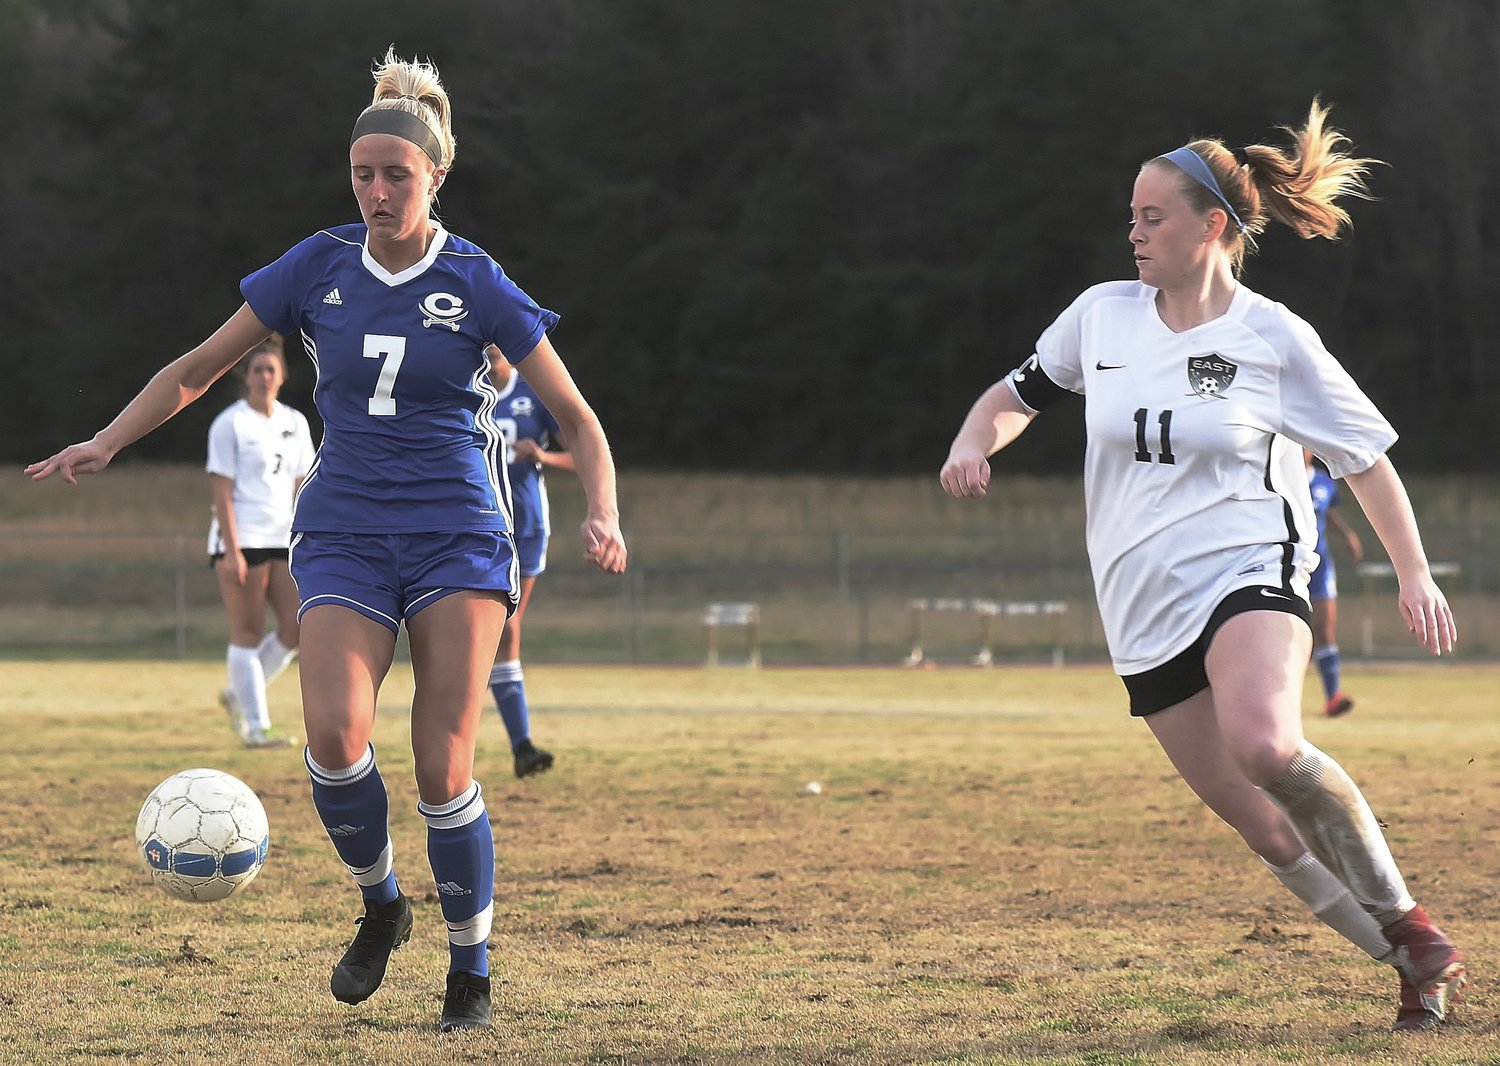 Cass senior Logan Vermaas brings the ball upfield for the Colonels on Tuesday. Vermaas scored and had an assist, but Cass lost a 5-4 home game to East Paulding.